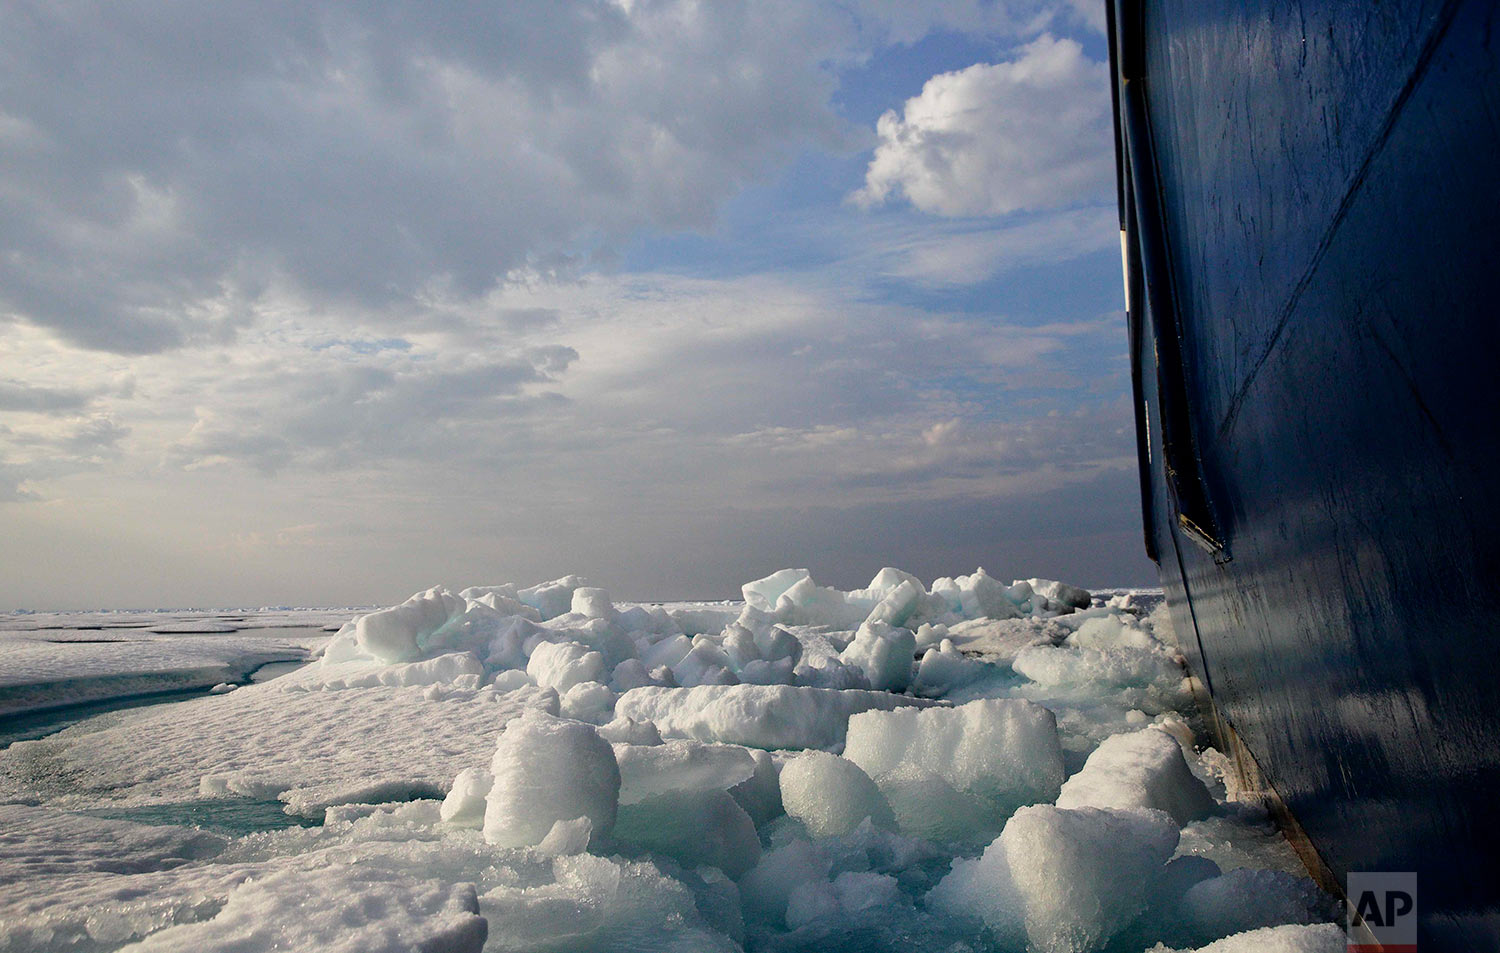 Broken sea ice is pushed aside as the Finnish icebreaker MSV Nordica sails through the Franklin Strait while traversing the Arctic's Northwest Passage, Saturday, July 22, 2017. Sea ice forms when the top layer of water reaches freezing point, usually around the start of October. As temperatures continue to fall this first-year ice grows downward until it is several feet thick. If the ice survives the following summer melt it becomes second-year ice. Another cycle and it becomes multi-year ice, which is the toughest kind. (AP Photo/David Goldman)